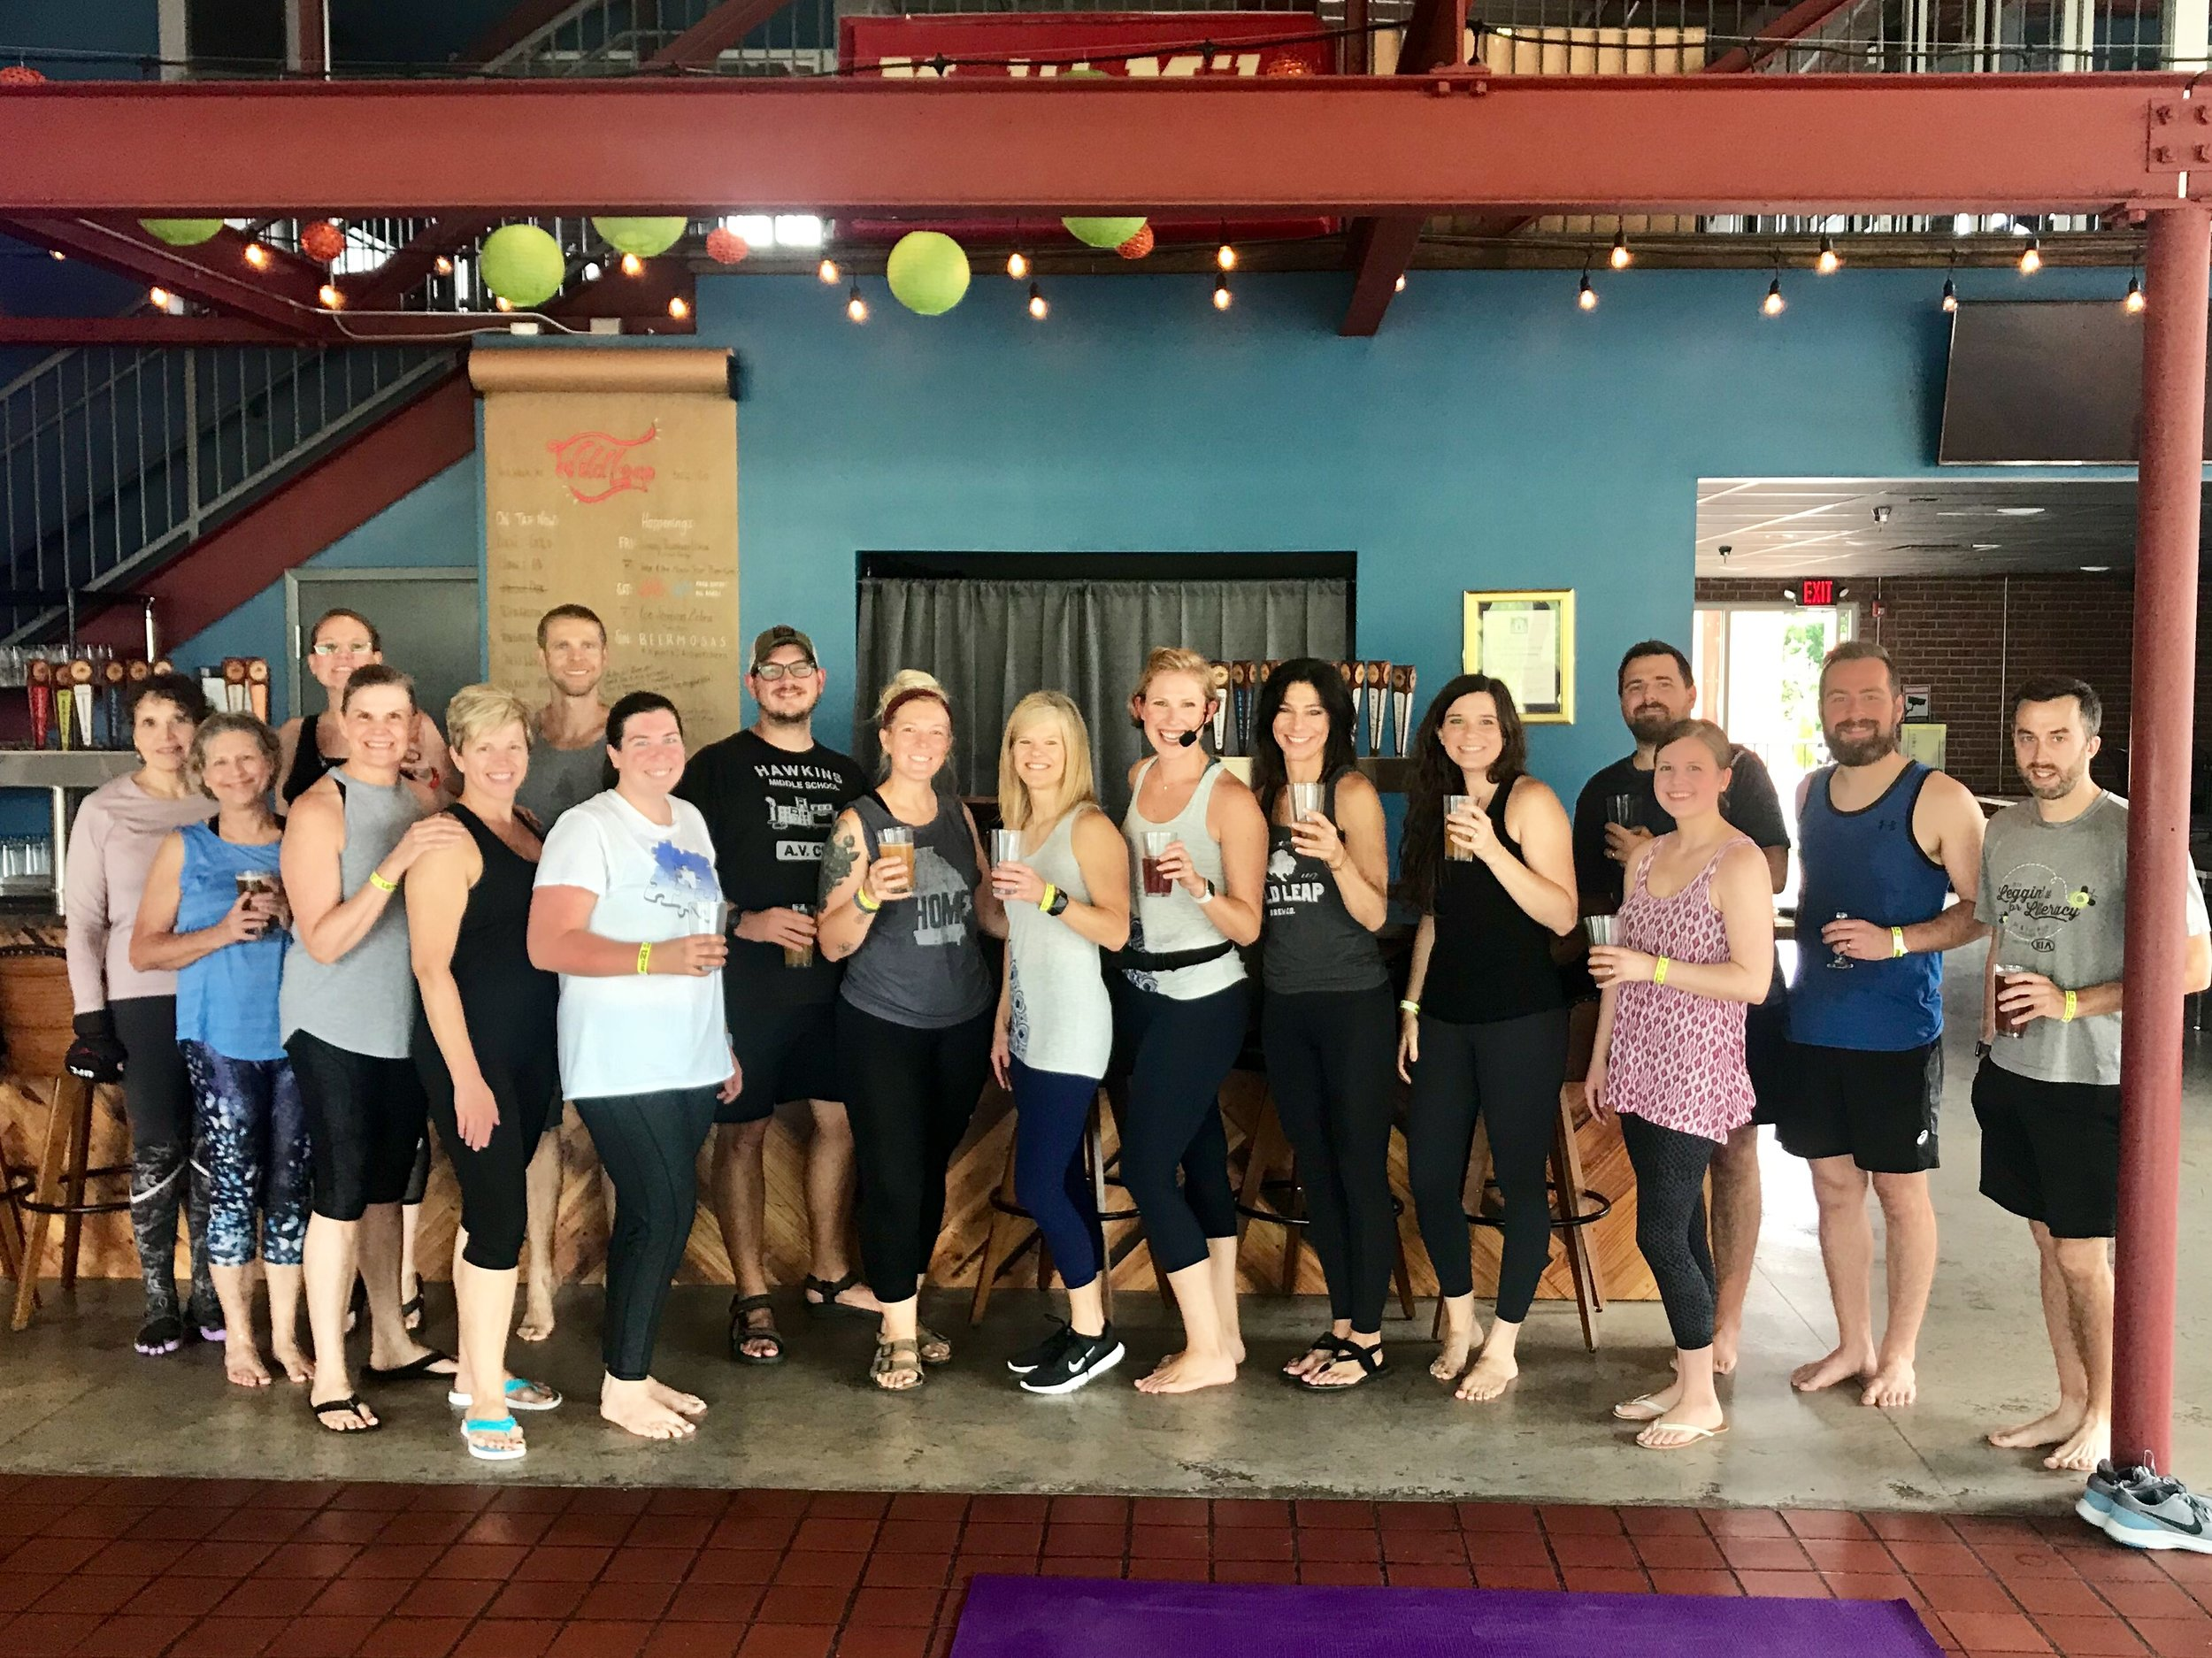 Round 2 of Yoga and Beer was a hit! These Sun Warriors chased the rain away and earned their beer! Come back on August 4th for Pound!